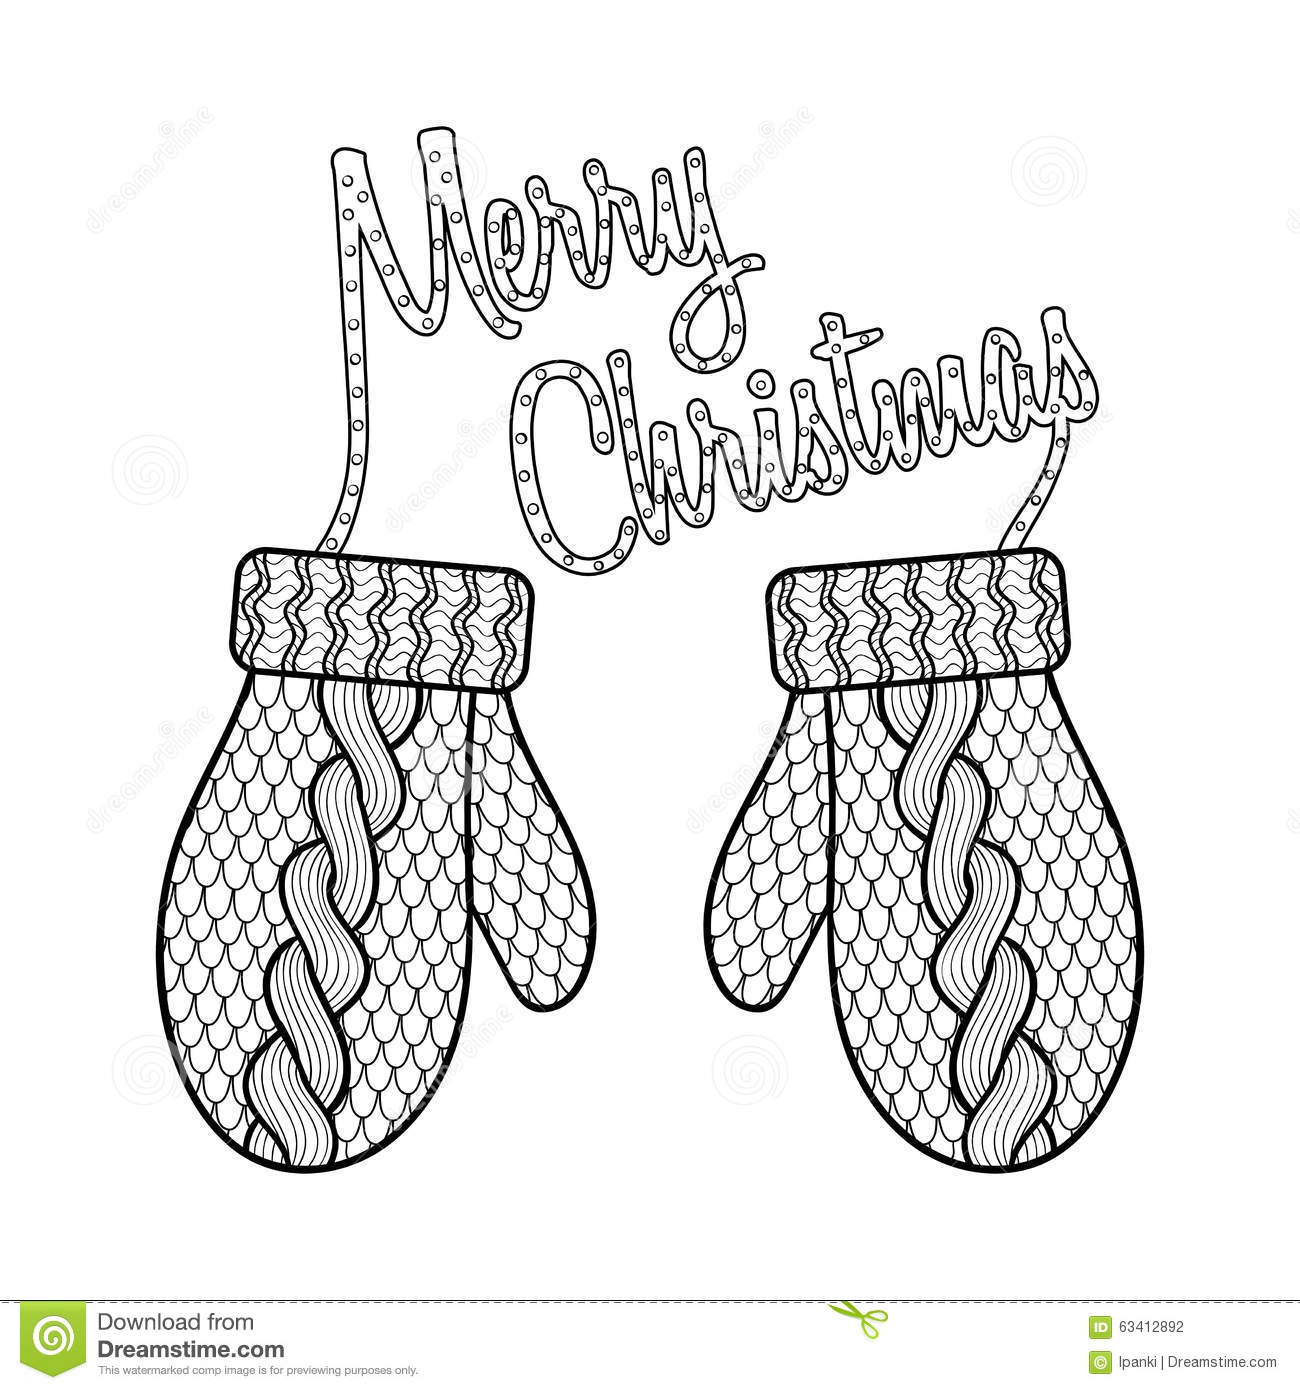 merry christmas card with patterned wishes and knitted mittens